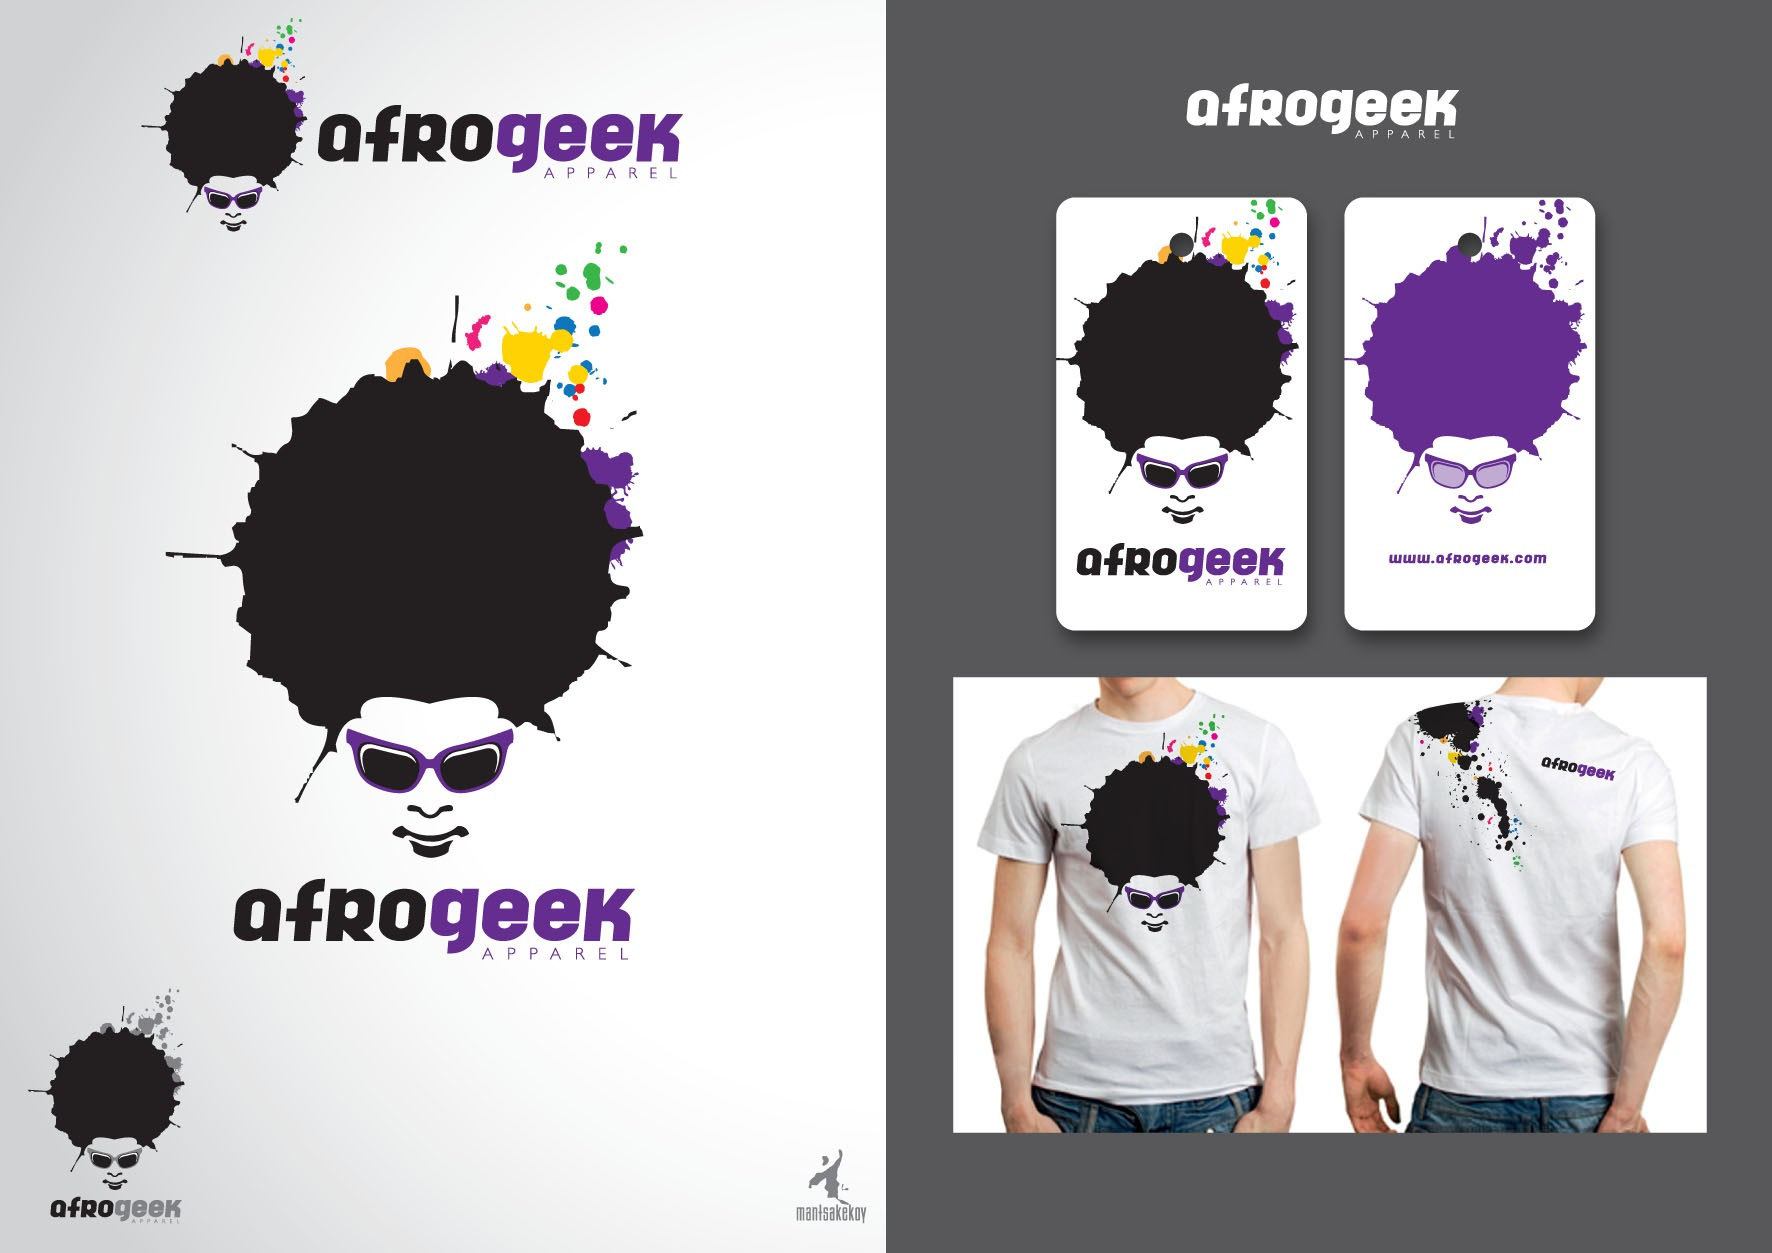 AfroGeek needs a new logo for the website, and T-Shirt designs